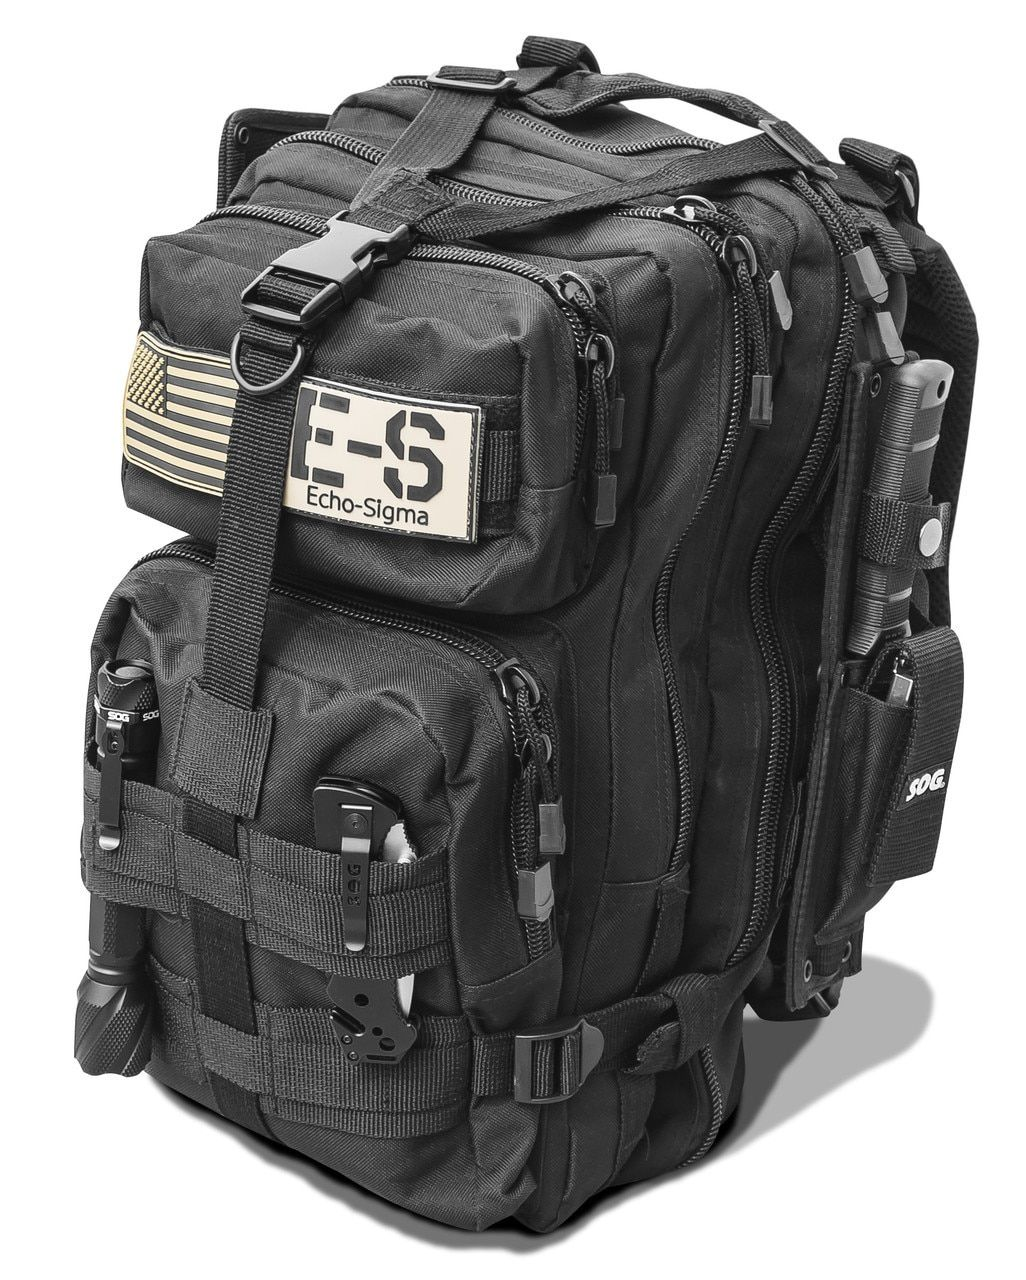 Photo of Get Home Bag: SOG Special Edition Emergency Kit